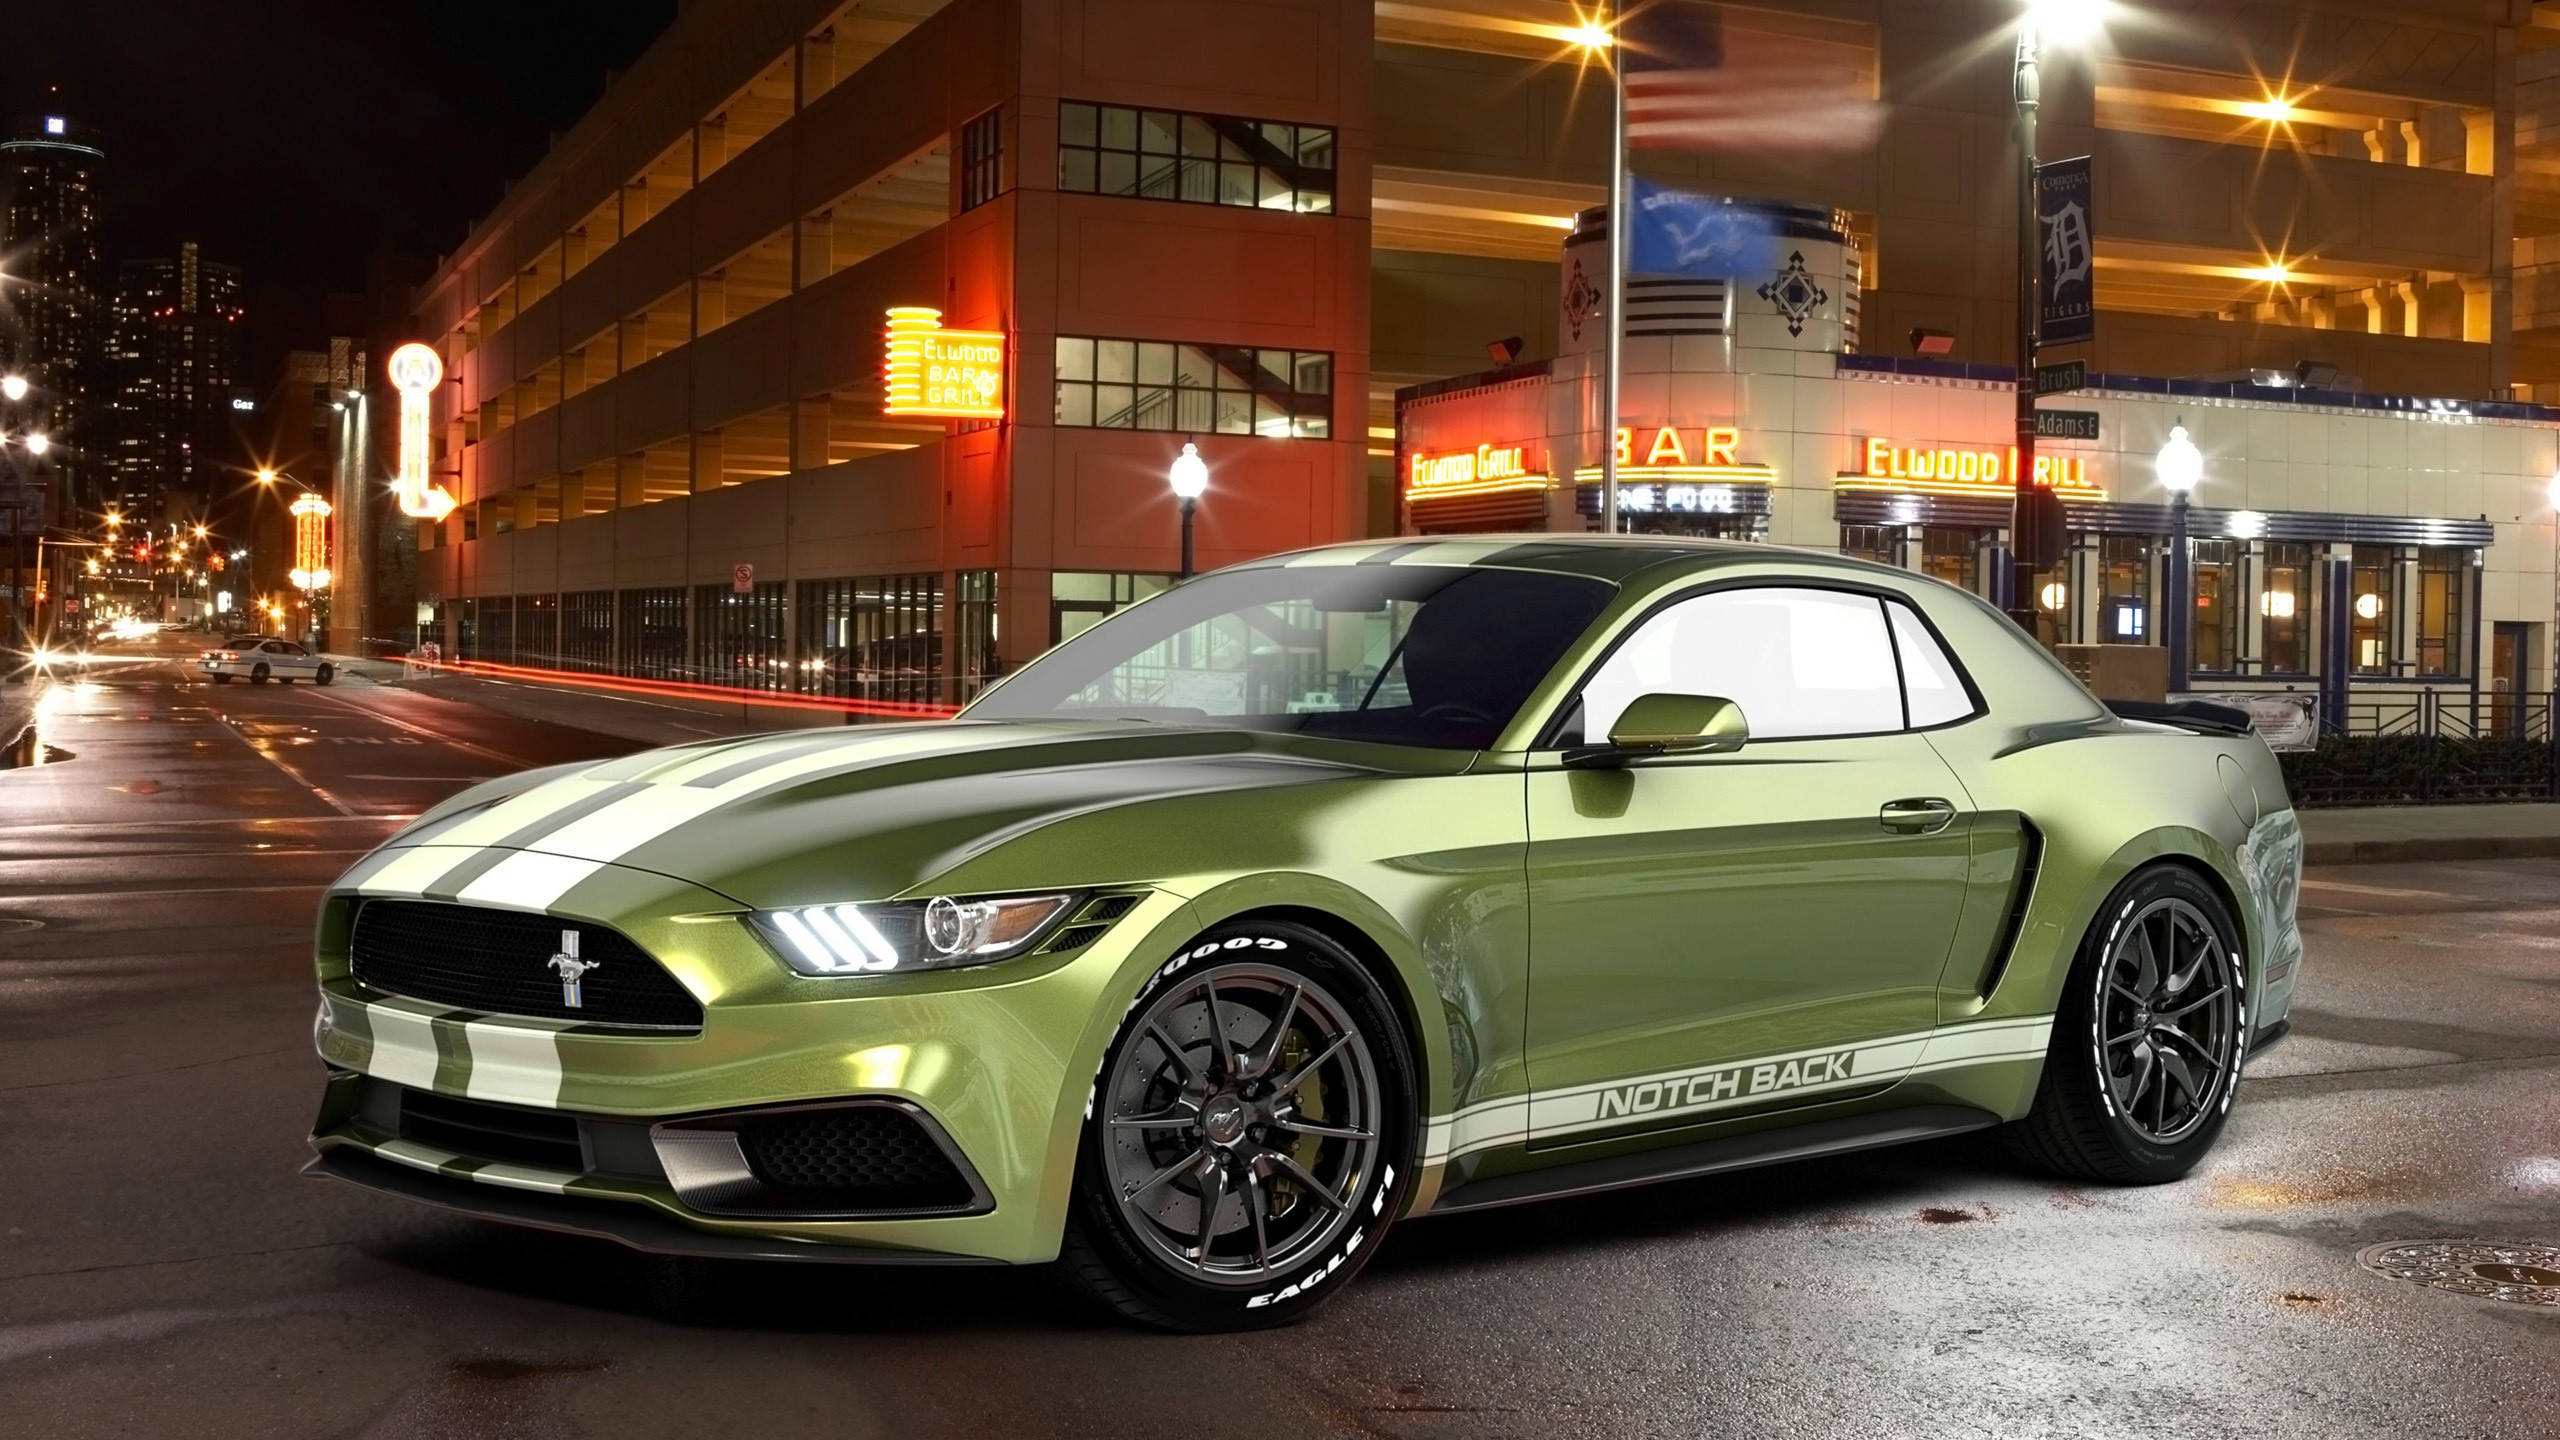 mustang ford notchback gold hd lime wallpapers chris cars 1080 1440 1920 def wheels 1366 2560 hdcarwallpapers 1600